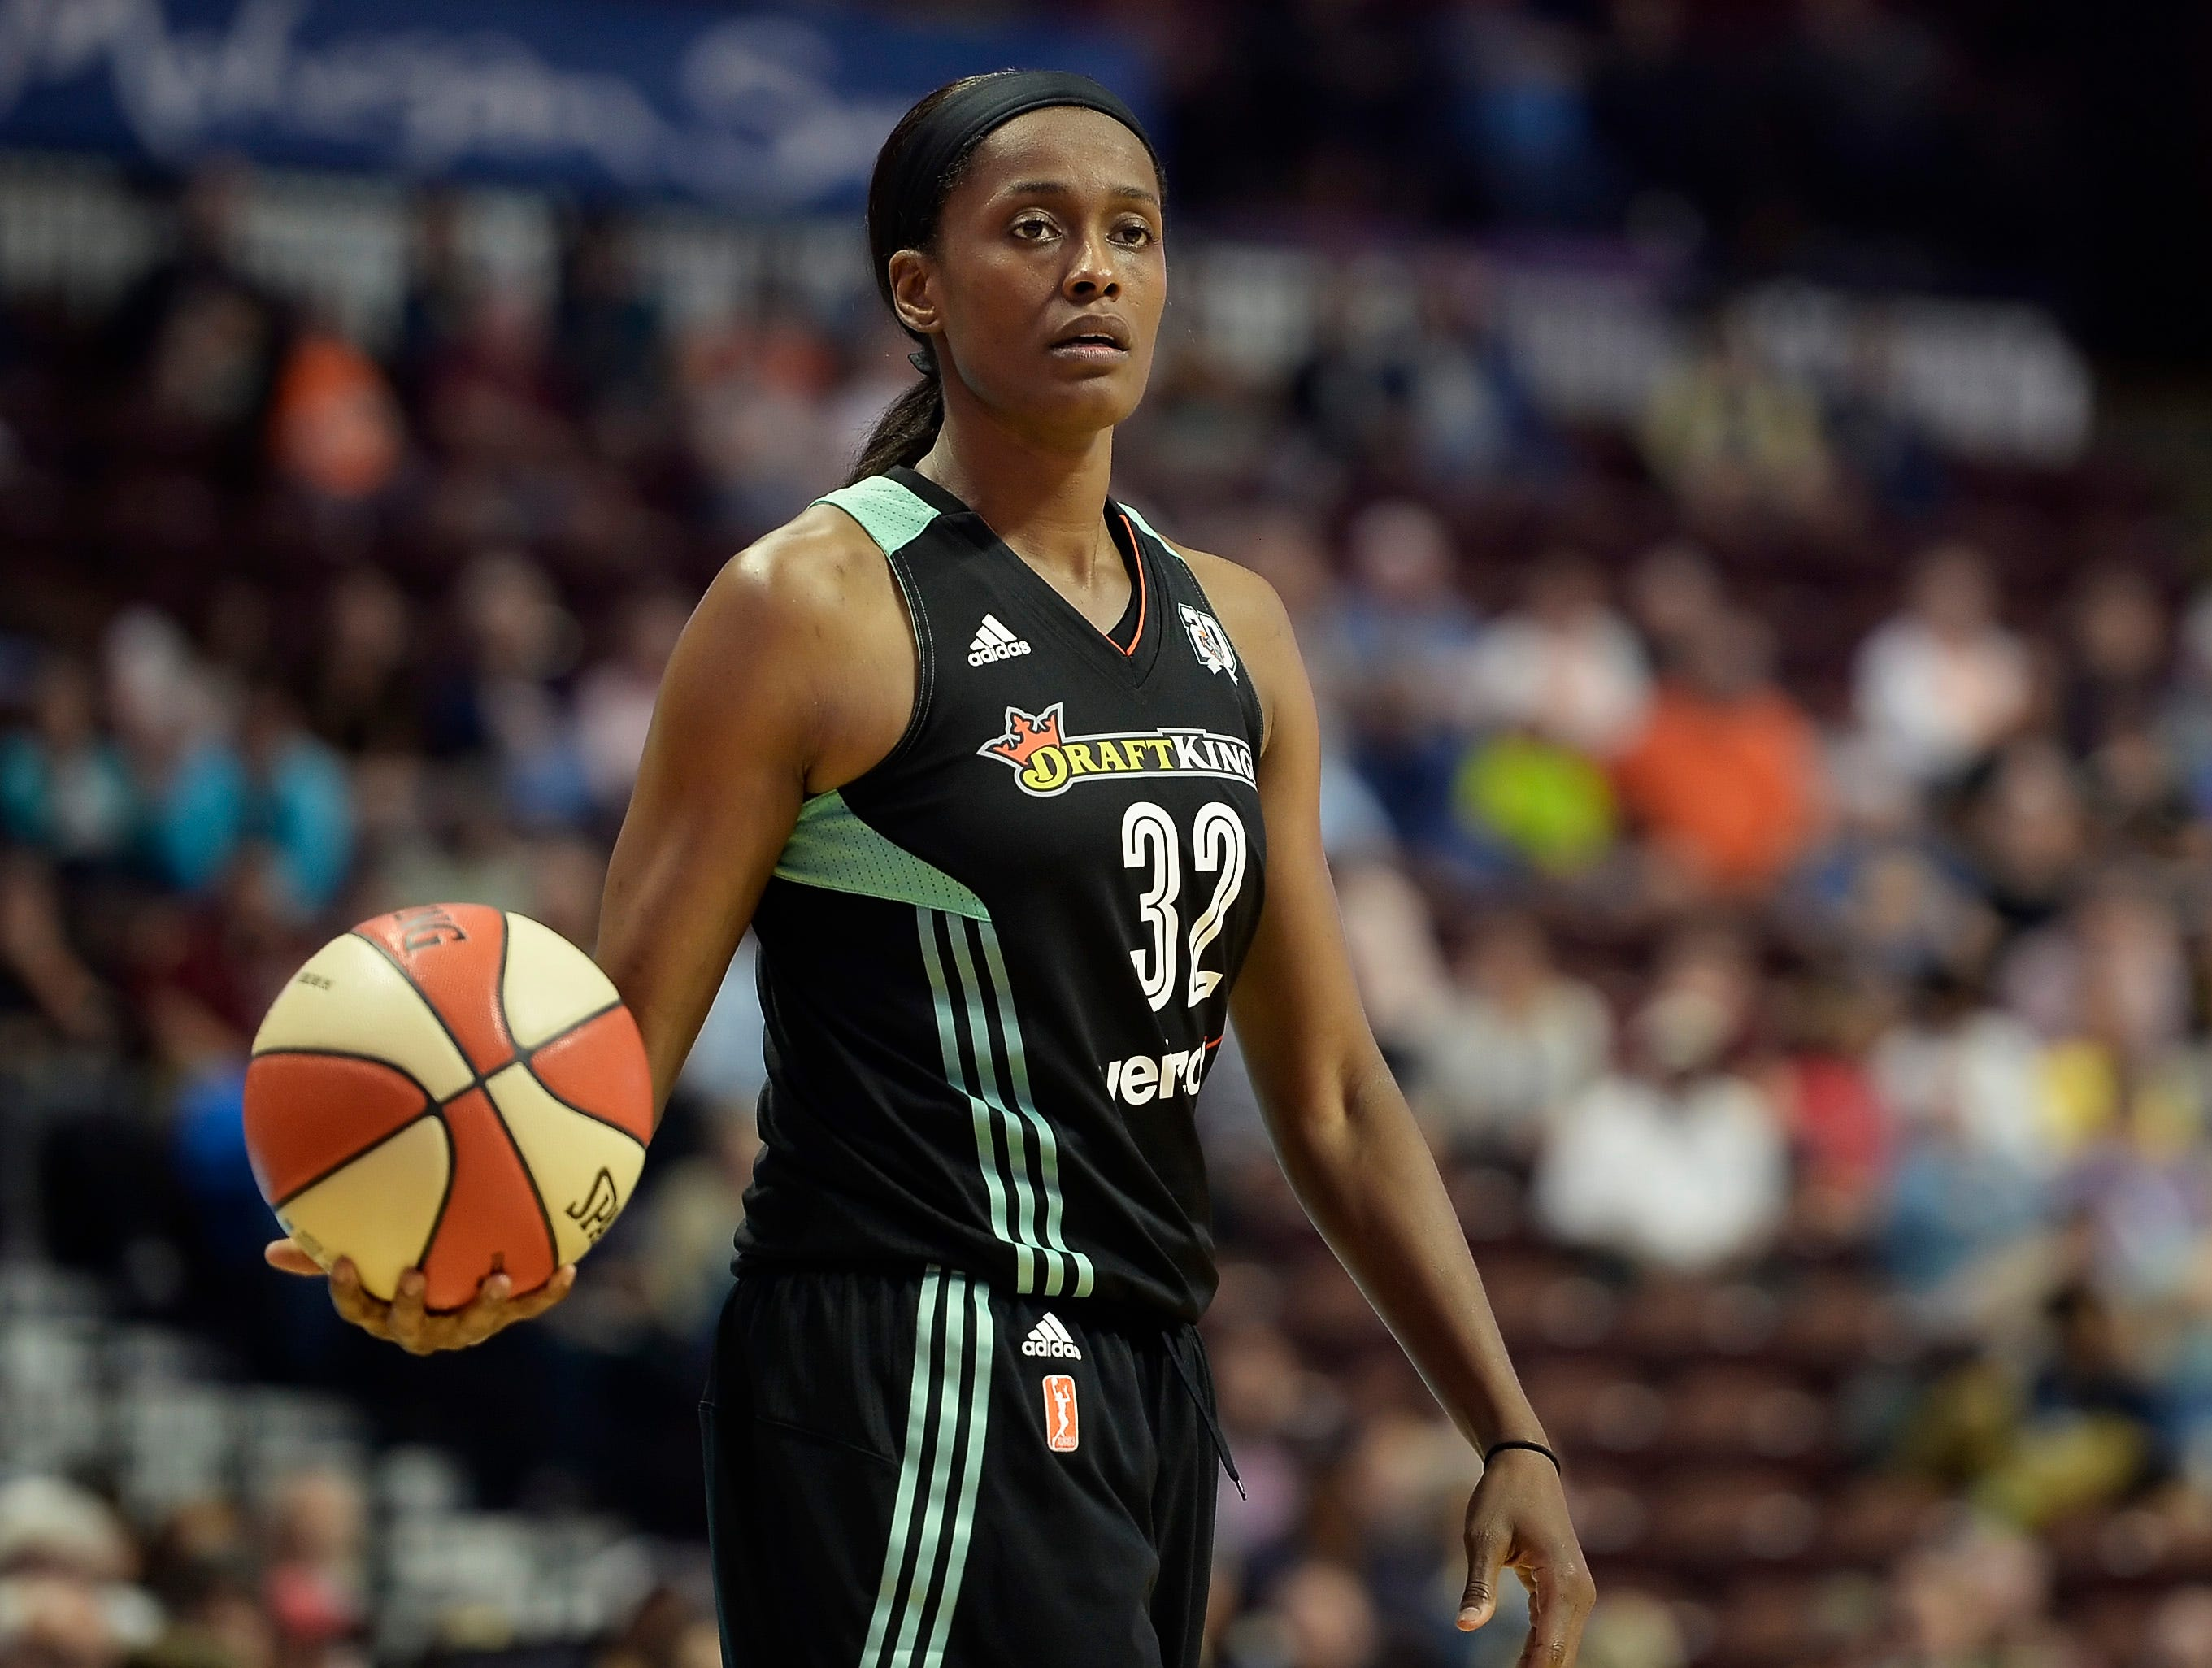 Nba Wnba Icon Swin Cash To Join New Orleans Pelicans In